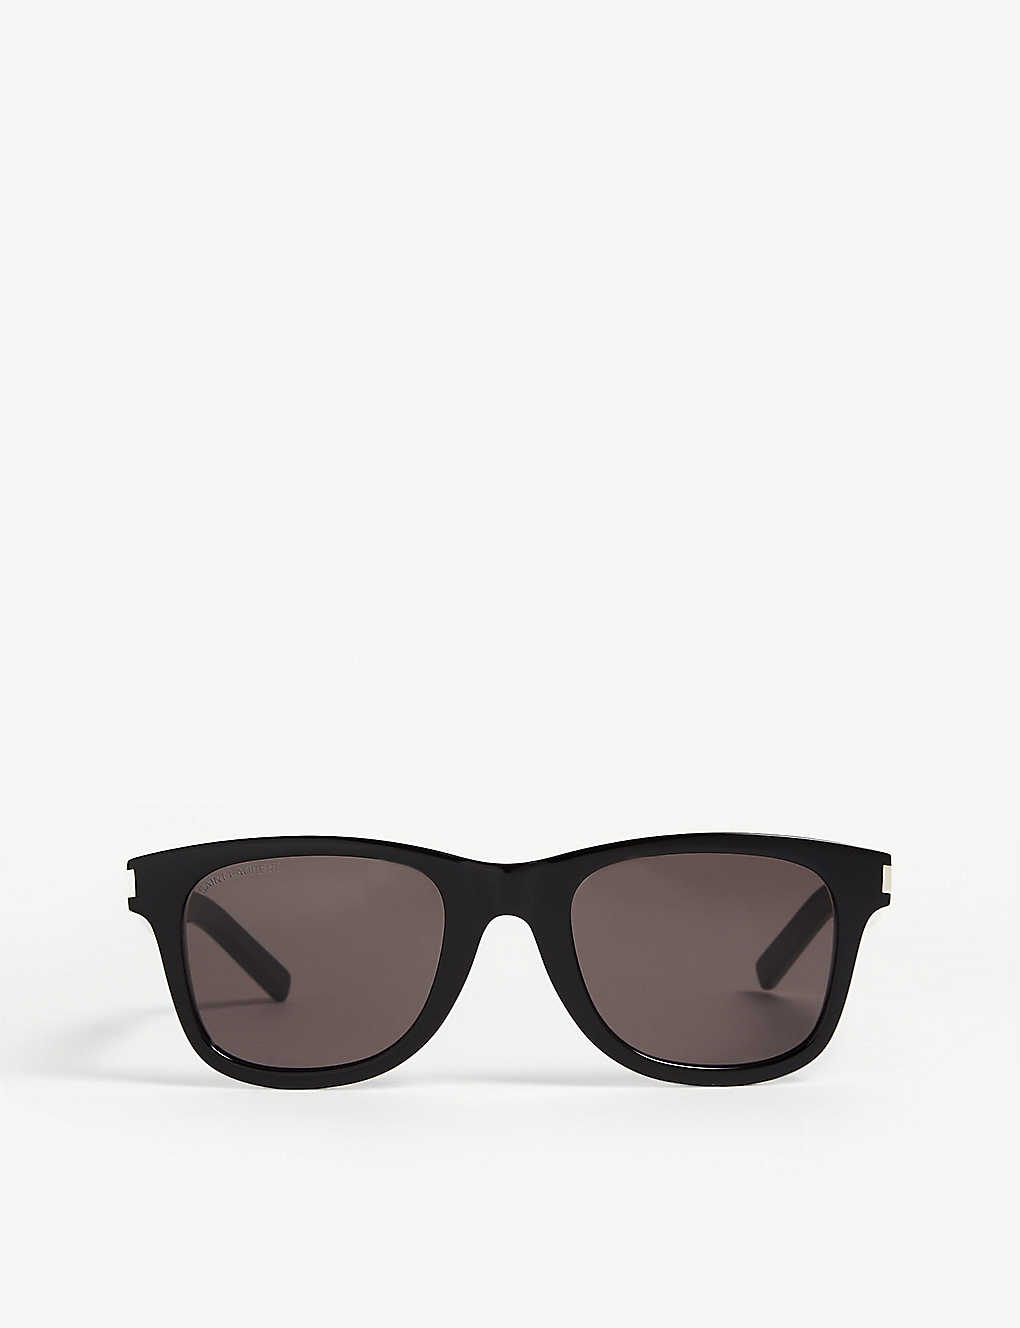 fffc11bdbde SAINT LAURENT - Square frame sunglasses | Selfridges.com